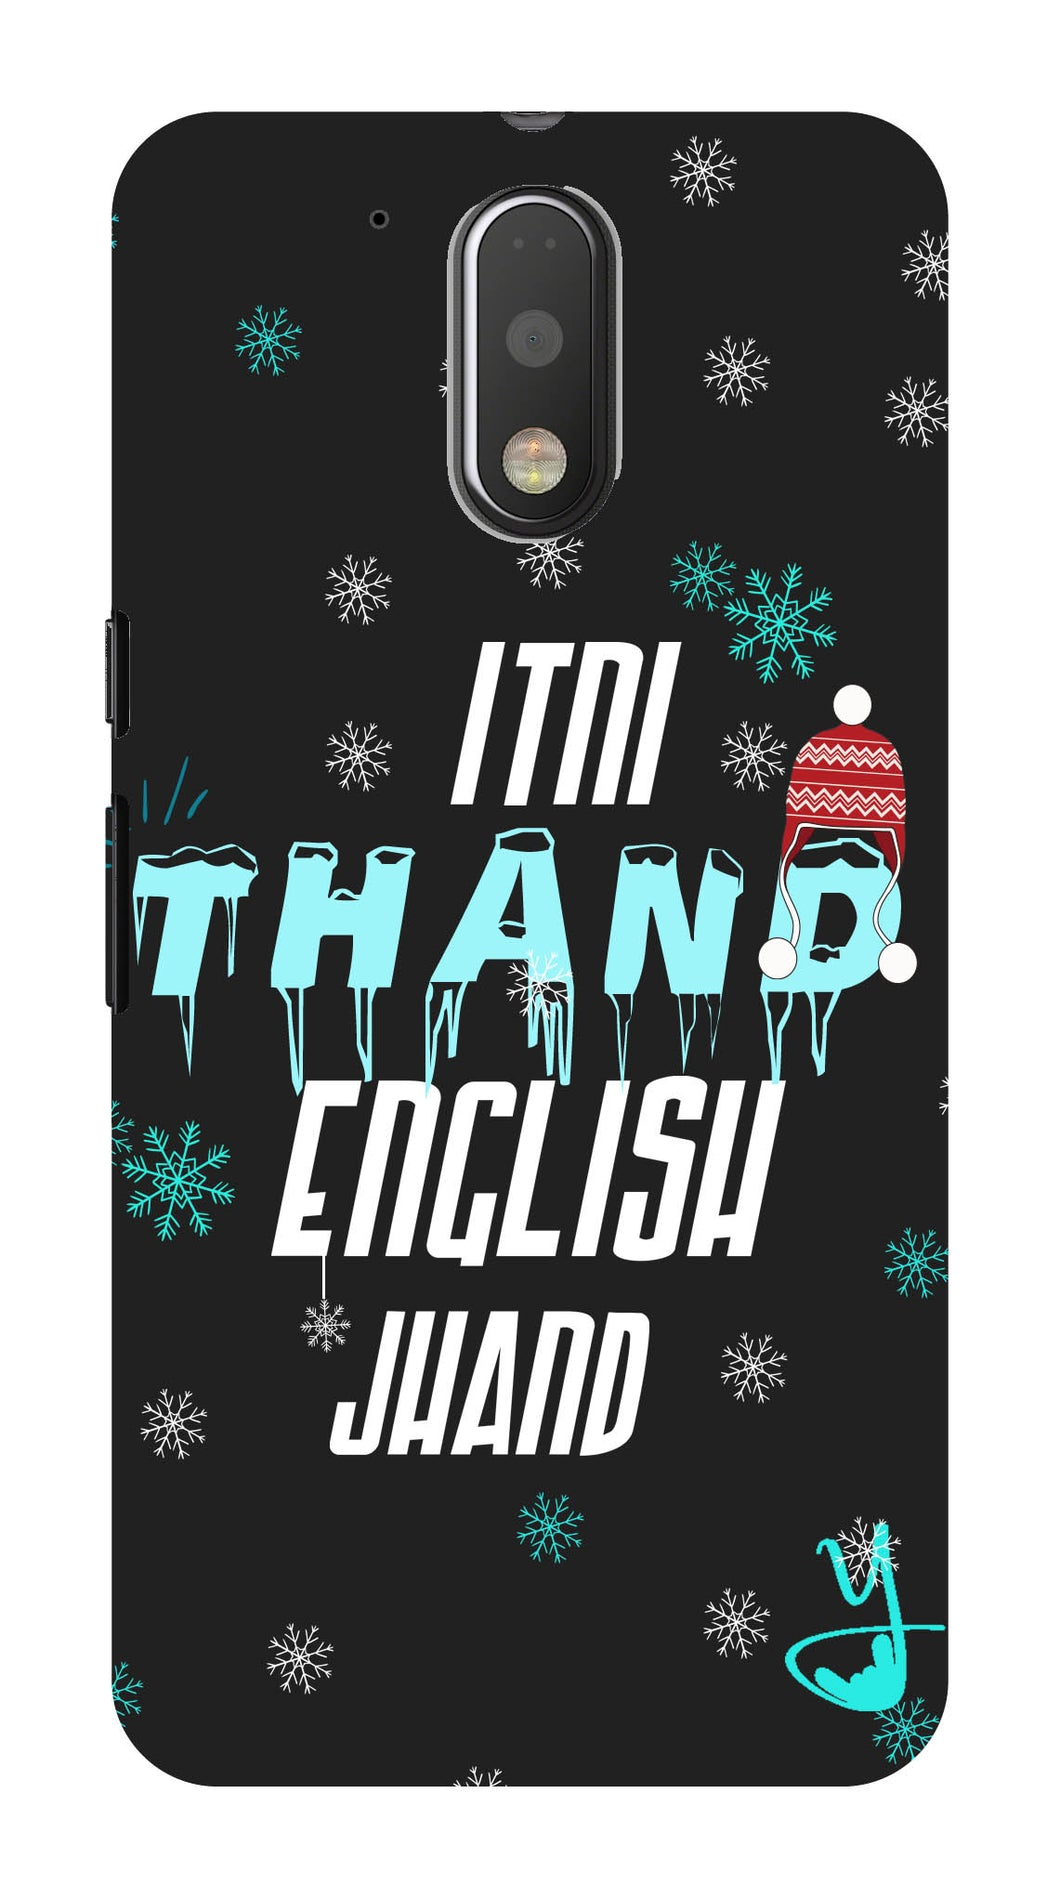 Itni Thand edition for Moto G4/G4 Plus